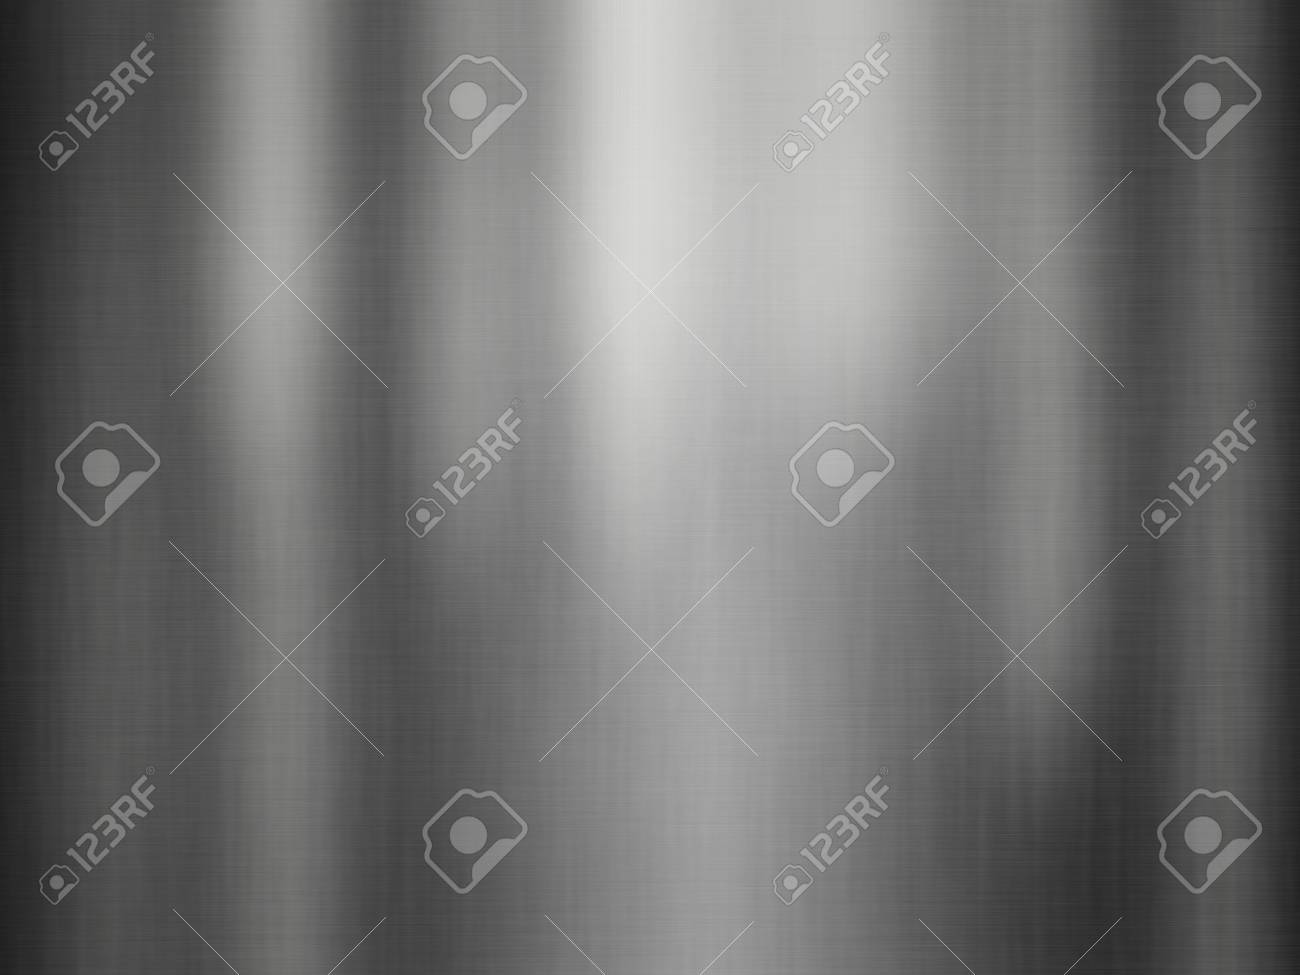 Stainless steel texture or metal texture background Banque d'images - 75076733